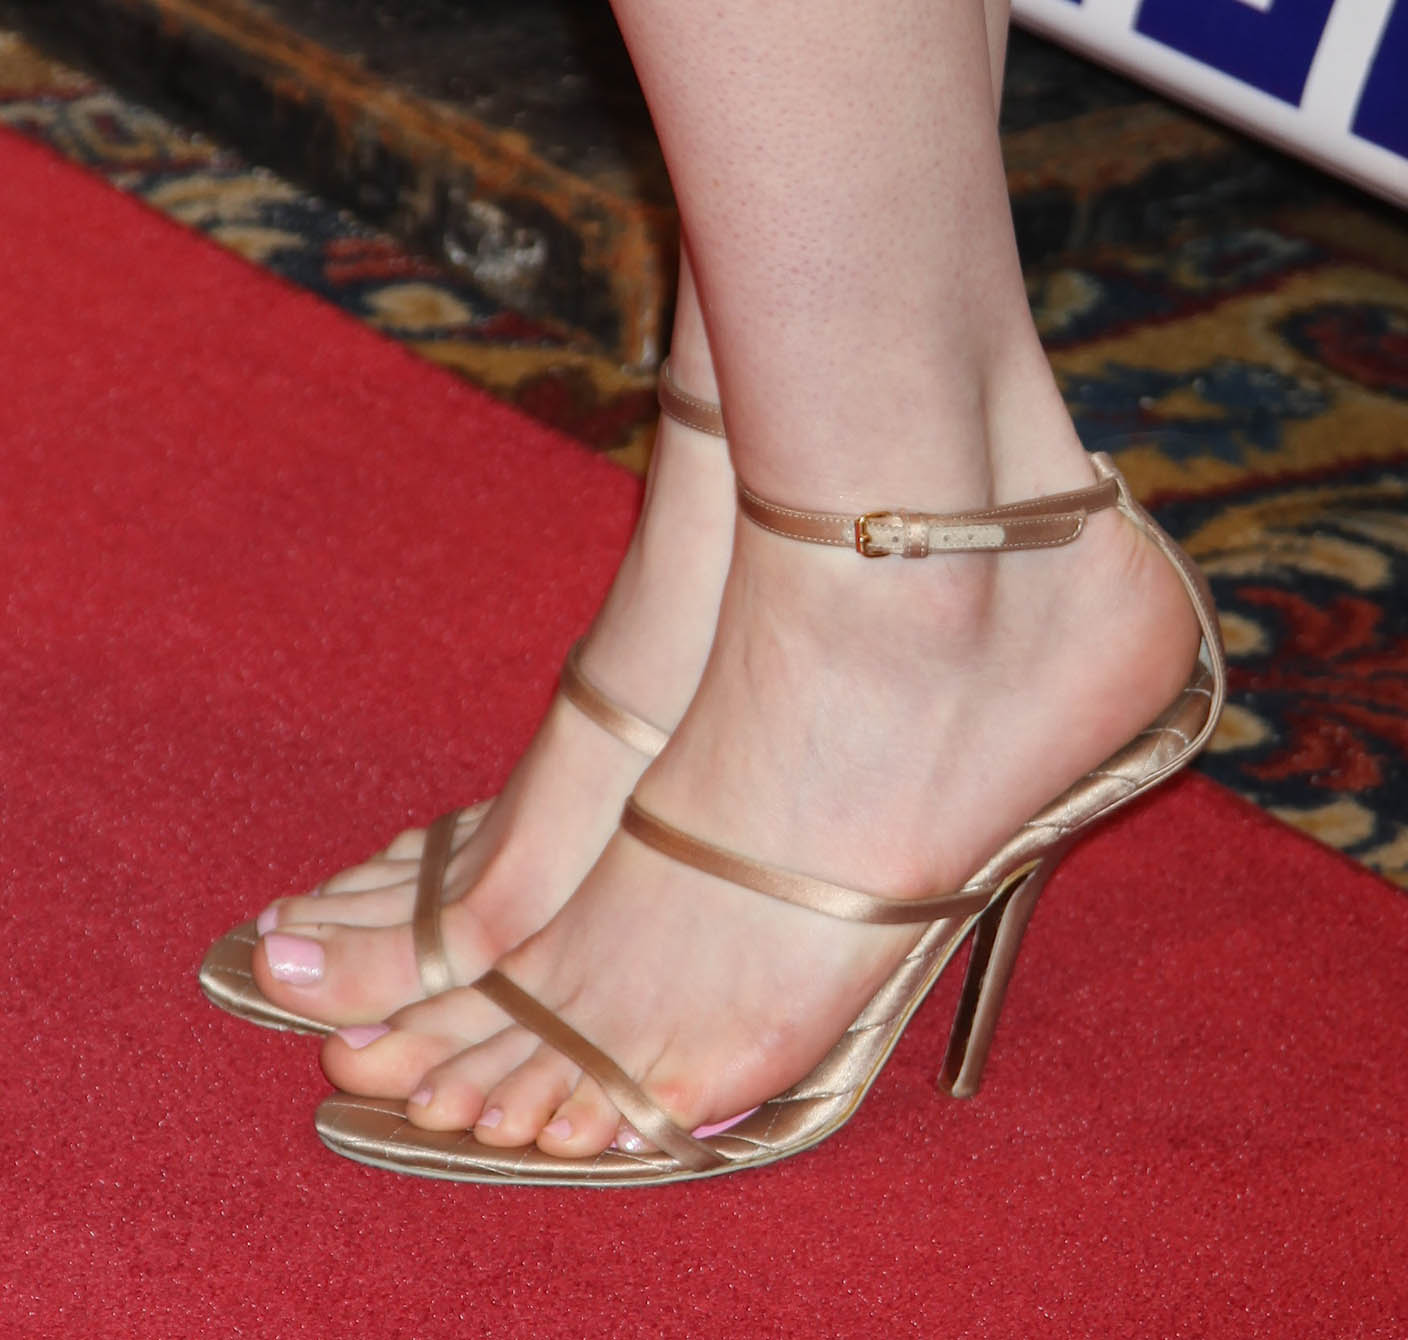 Sexy Feet Anne Hathaway naked photo 2017